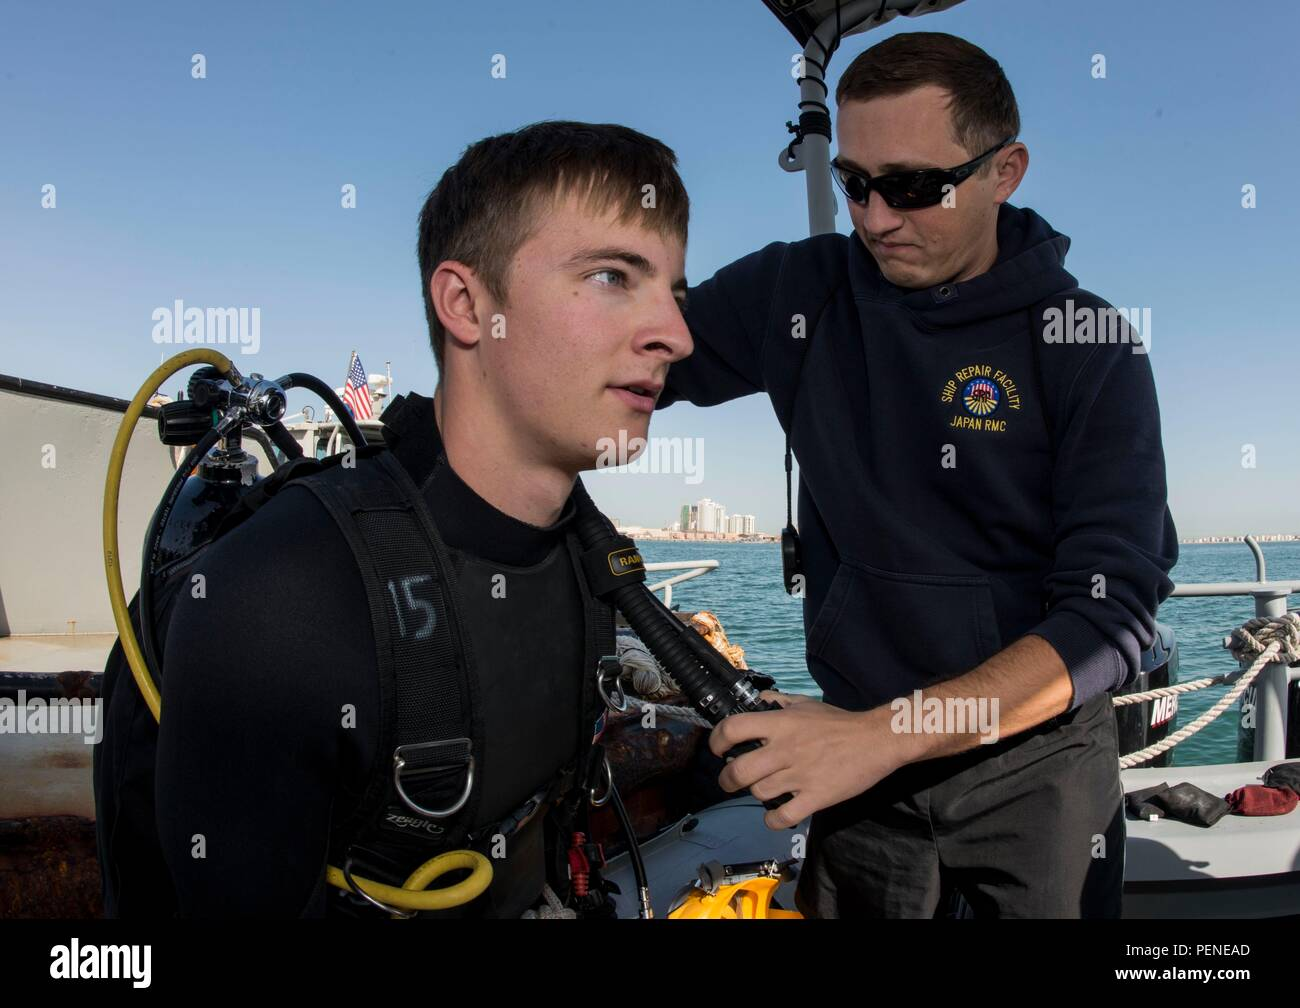 160106-N-BJ294-020 NAVAL SUPPORT ACTIVITY BAHRAIN (Jan. 06, 2016) Navy Diver 1st Class Scott Colvin conducts gear checks on Navy Diver 3rd Class Darren Hauk, assigned to Commander, Task Group (CTG) 56.1, prior to conducting an anti-terrorism force protection dive. CTG 56.1 conducts mine countermeasures, explosive ordnance disposal, salvage-diving and force protection operations throughout the U.S. 5th Fleet area of operations. (U.S. Navy Combat Camera photo by Mass Communication Specialist 2nd Class Wyatt Huggett/Released) - Stock Image